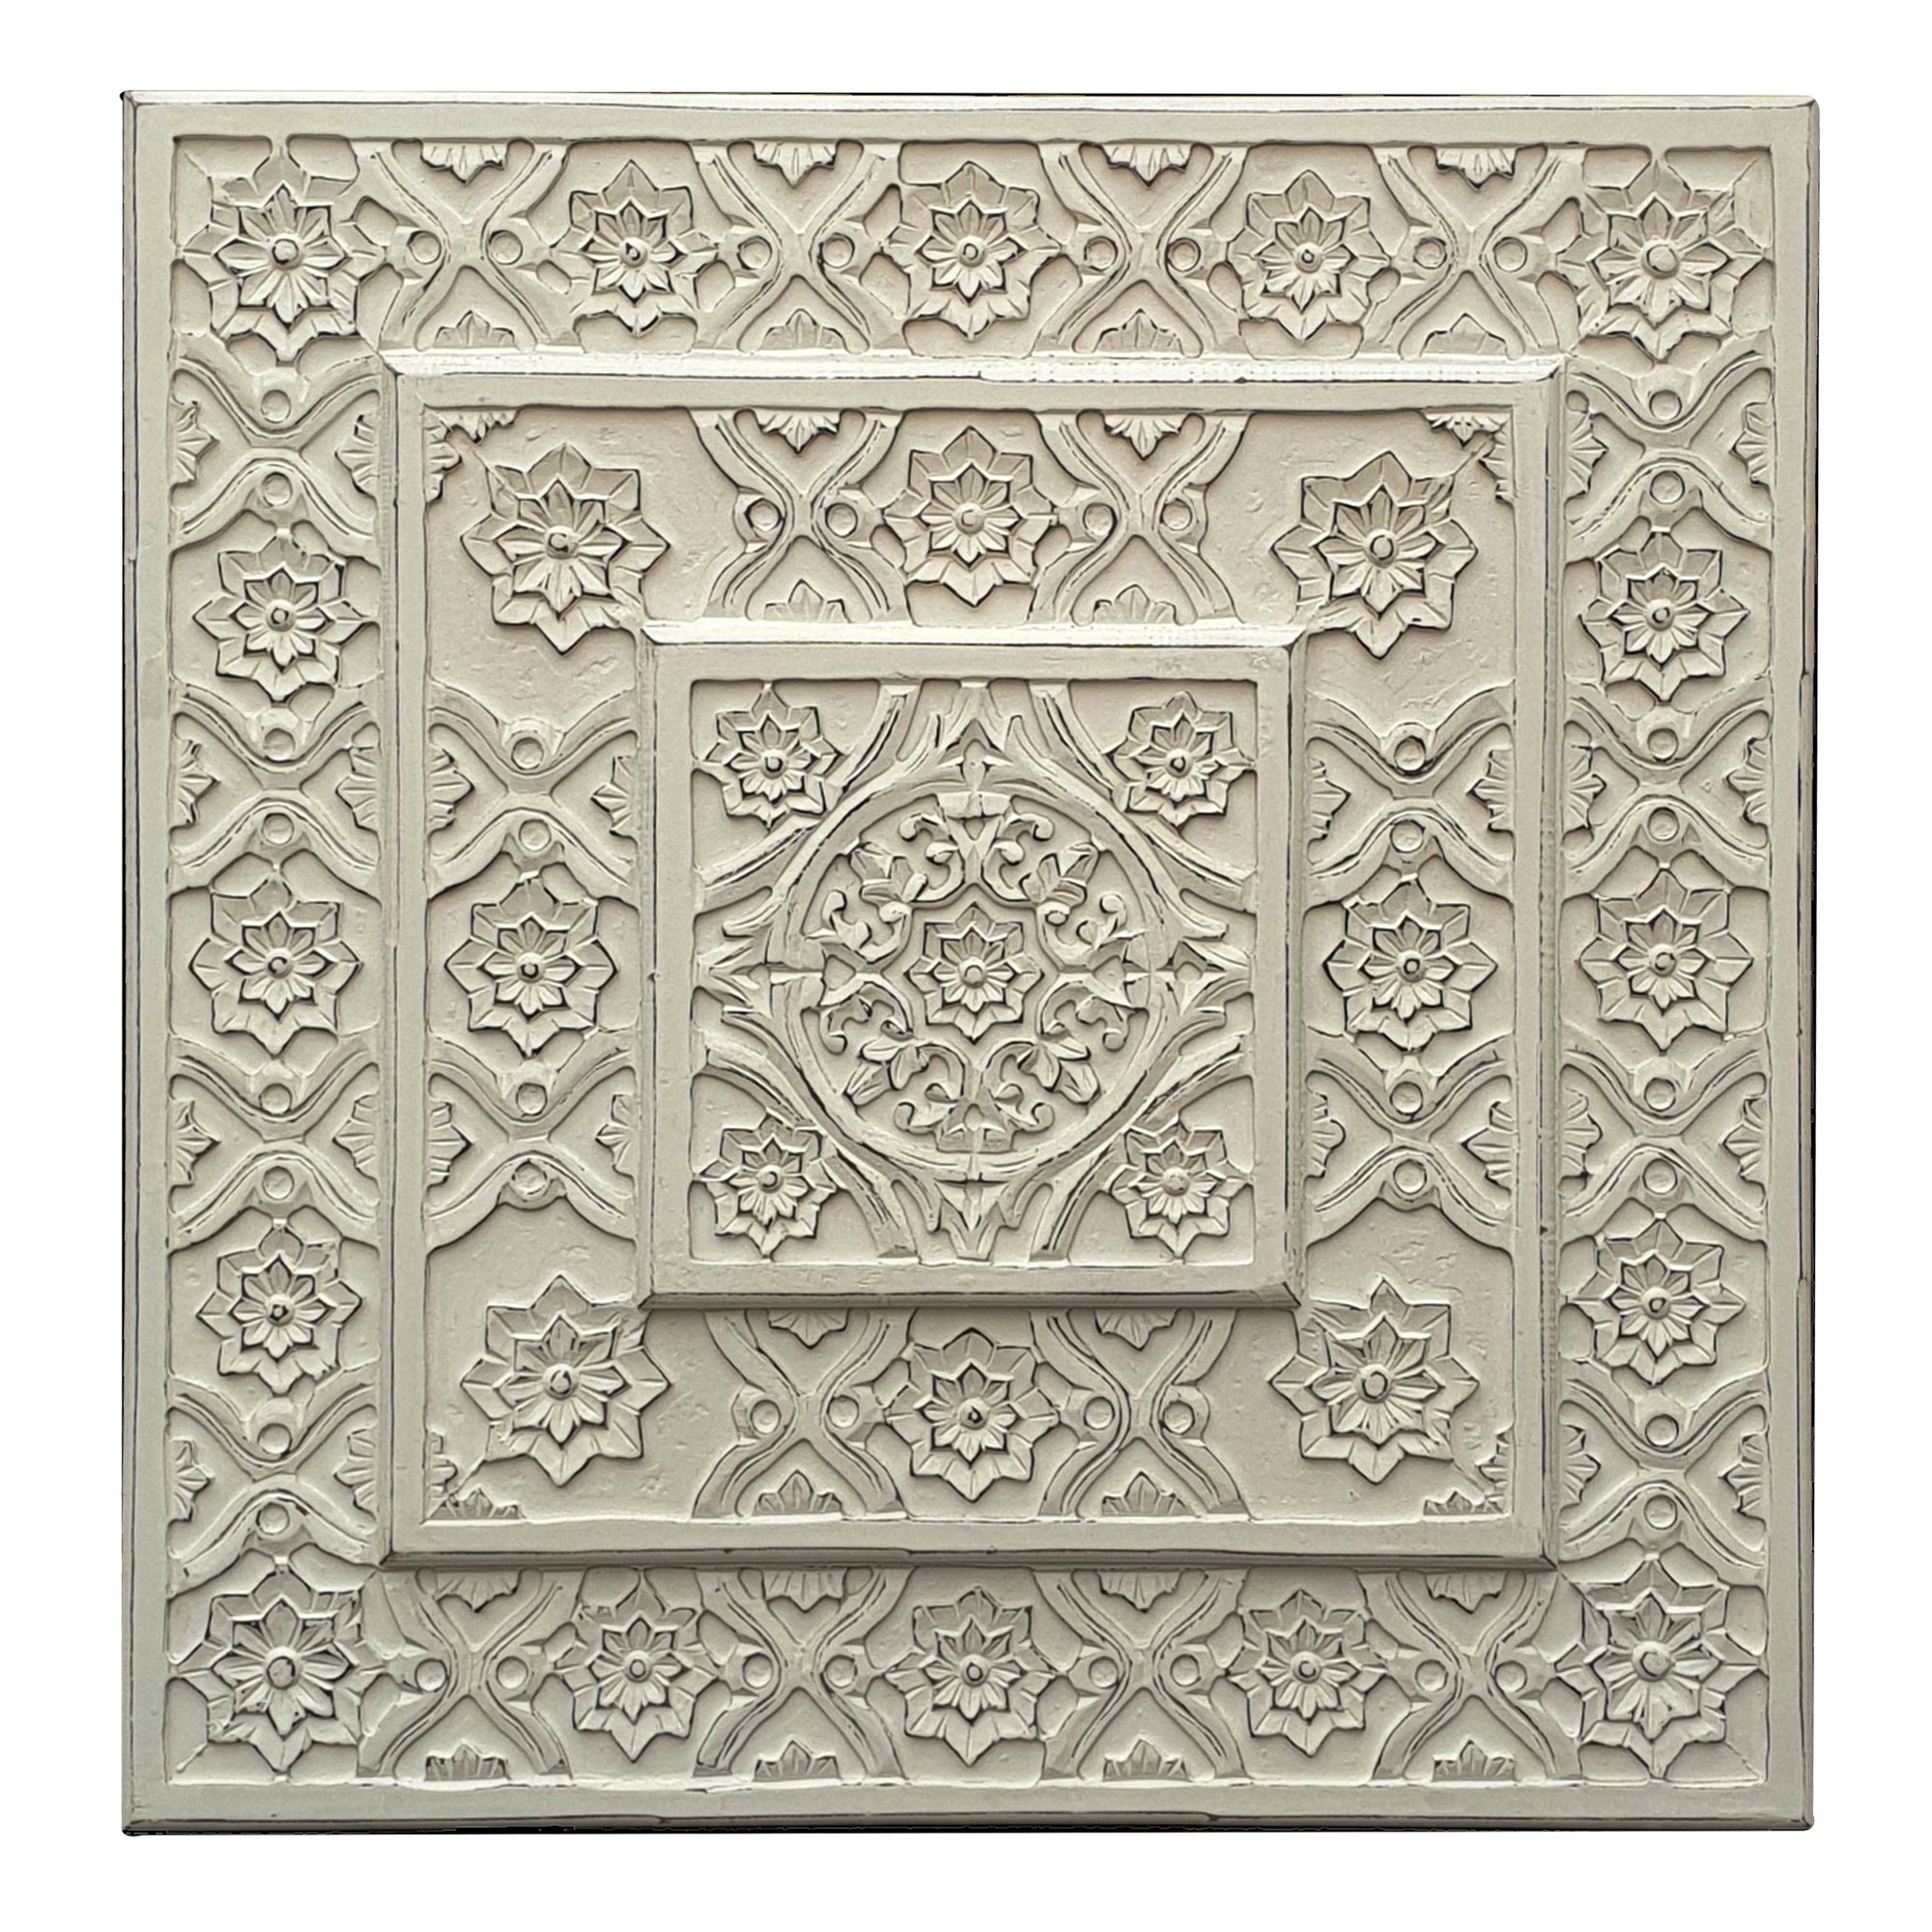 Indore Wooden Wall Art, 90cm, White